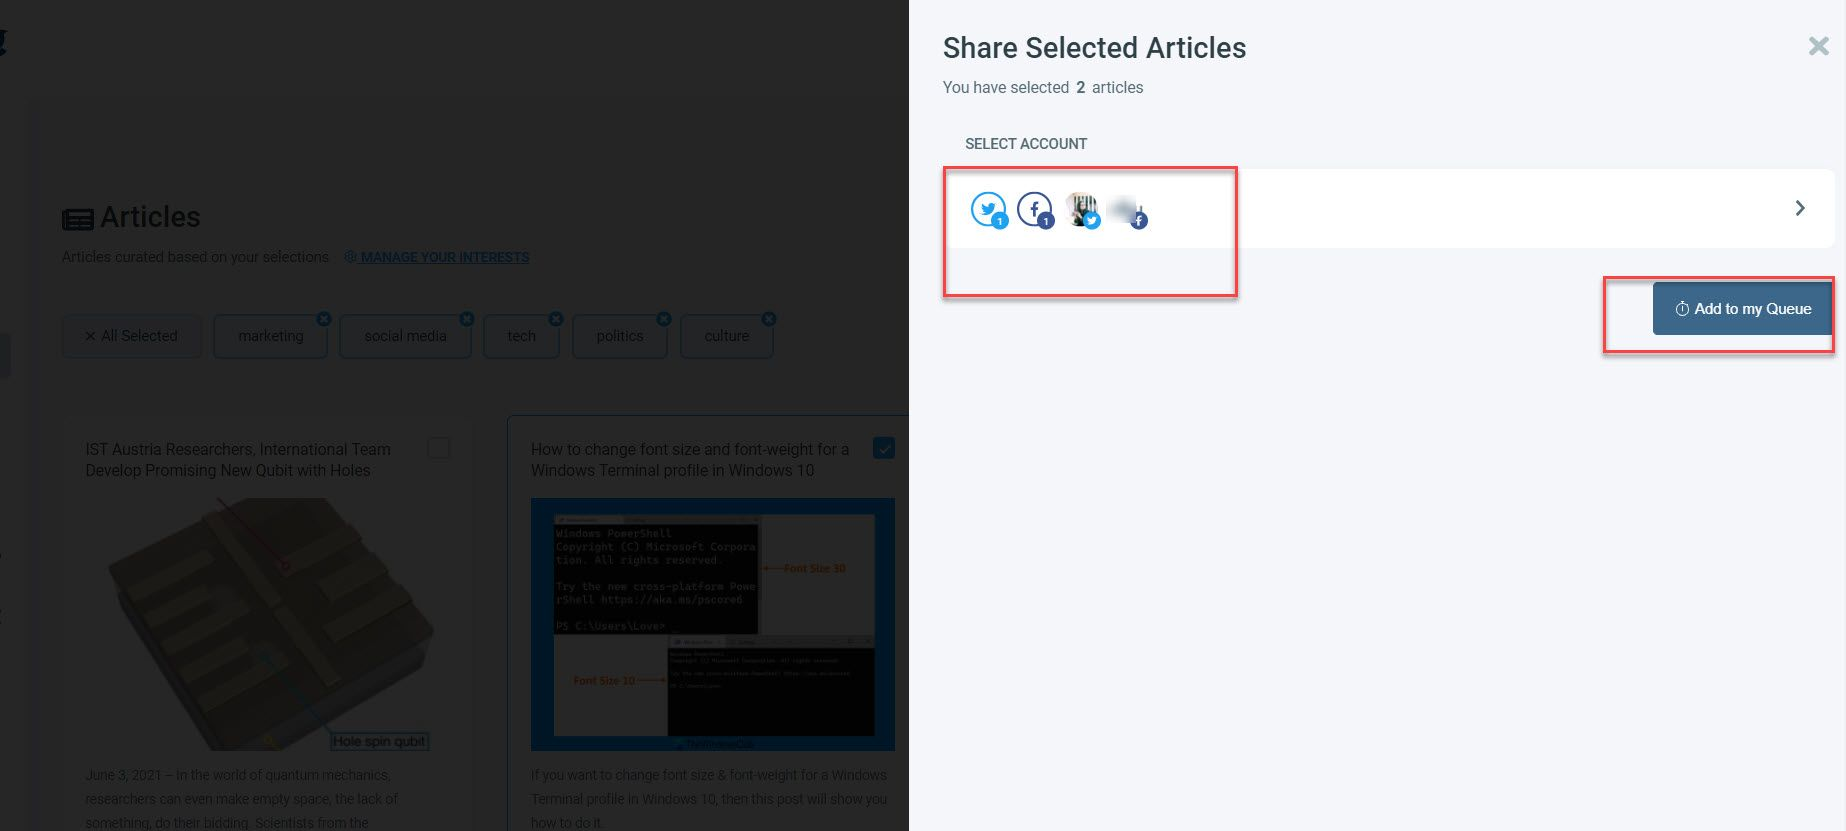 You can go for scheduling posts on Twitter and Facebook for multiple accounts and even group those multiple accounts to rather then selecting them each time.